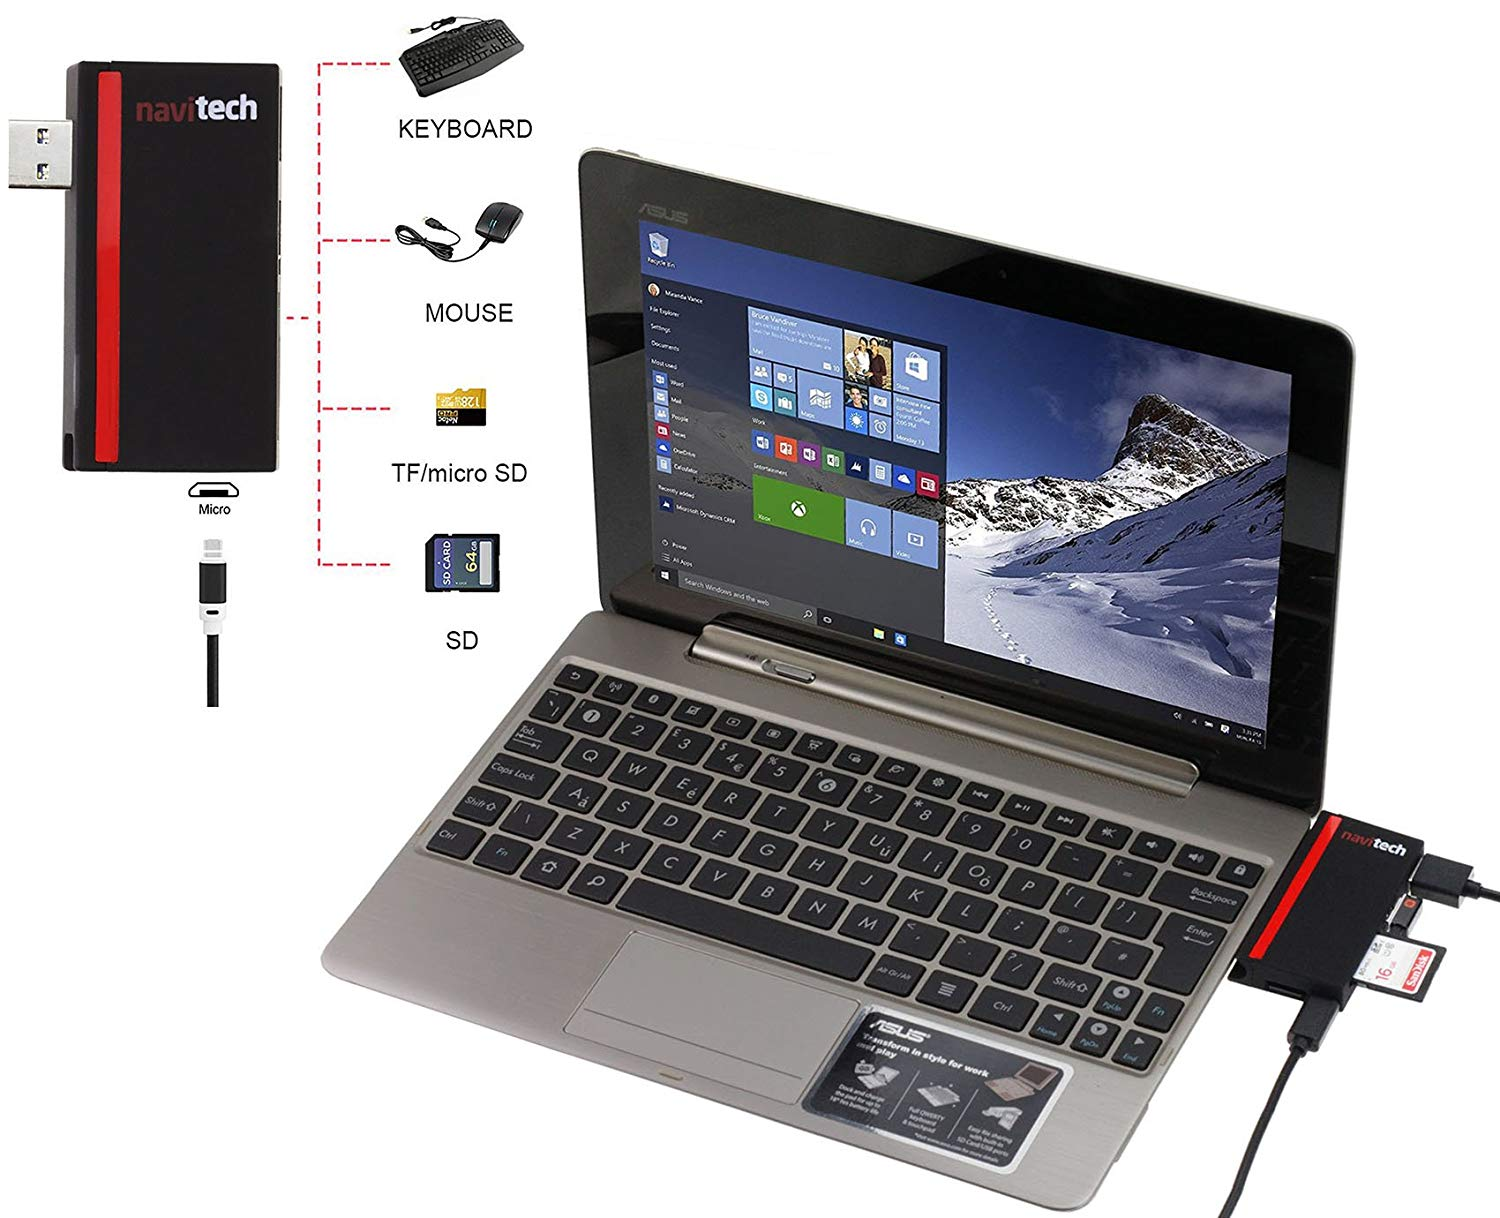 Asus U82U Notebook Secure Delete XP